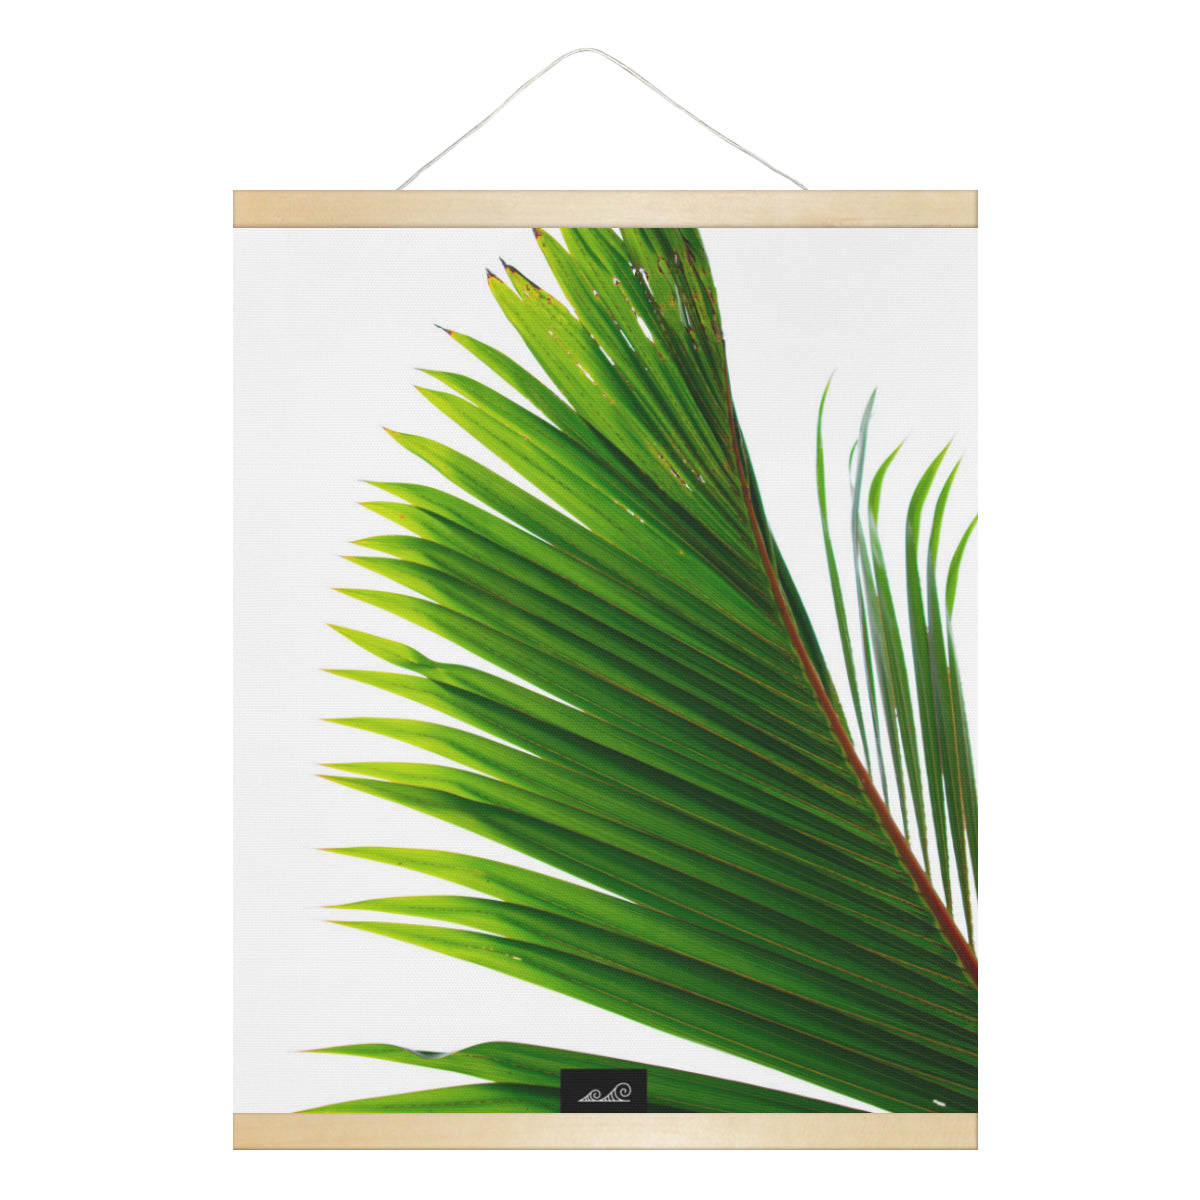 Coconut Tree Leaf Guam CNMI Hanging Canvas Poster with Wood Frame